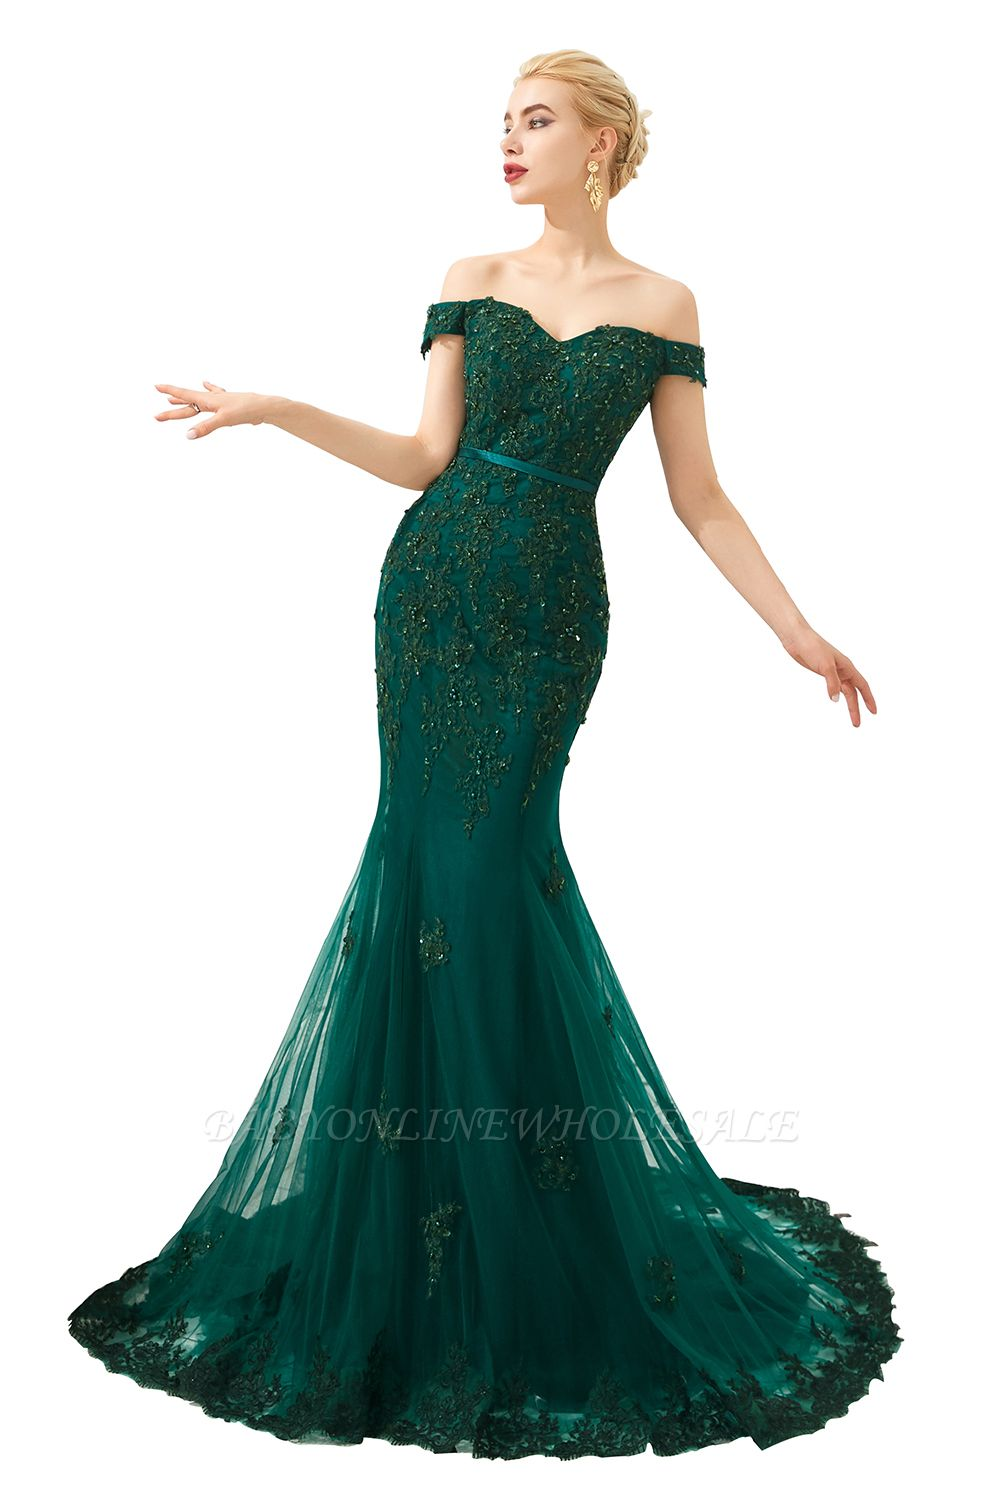 Harvey | Emerald green Mermaid Tulle Prom dress with Beaded Lace Appliques